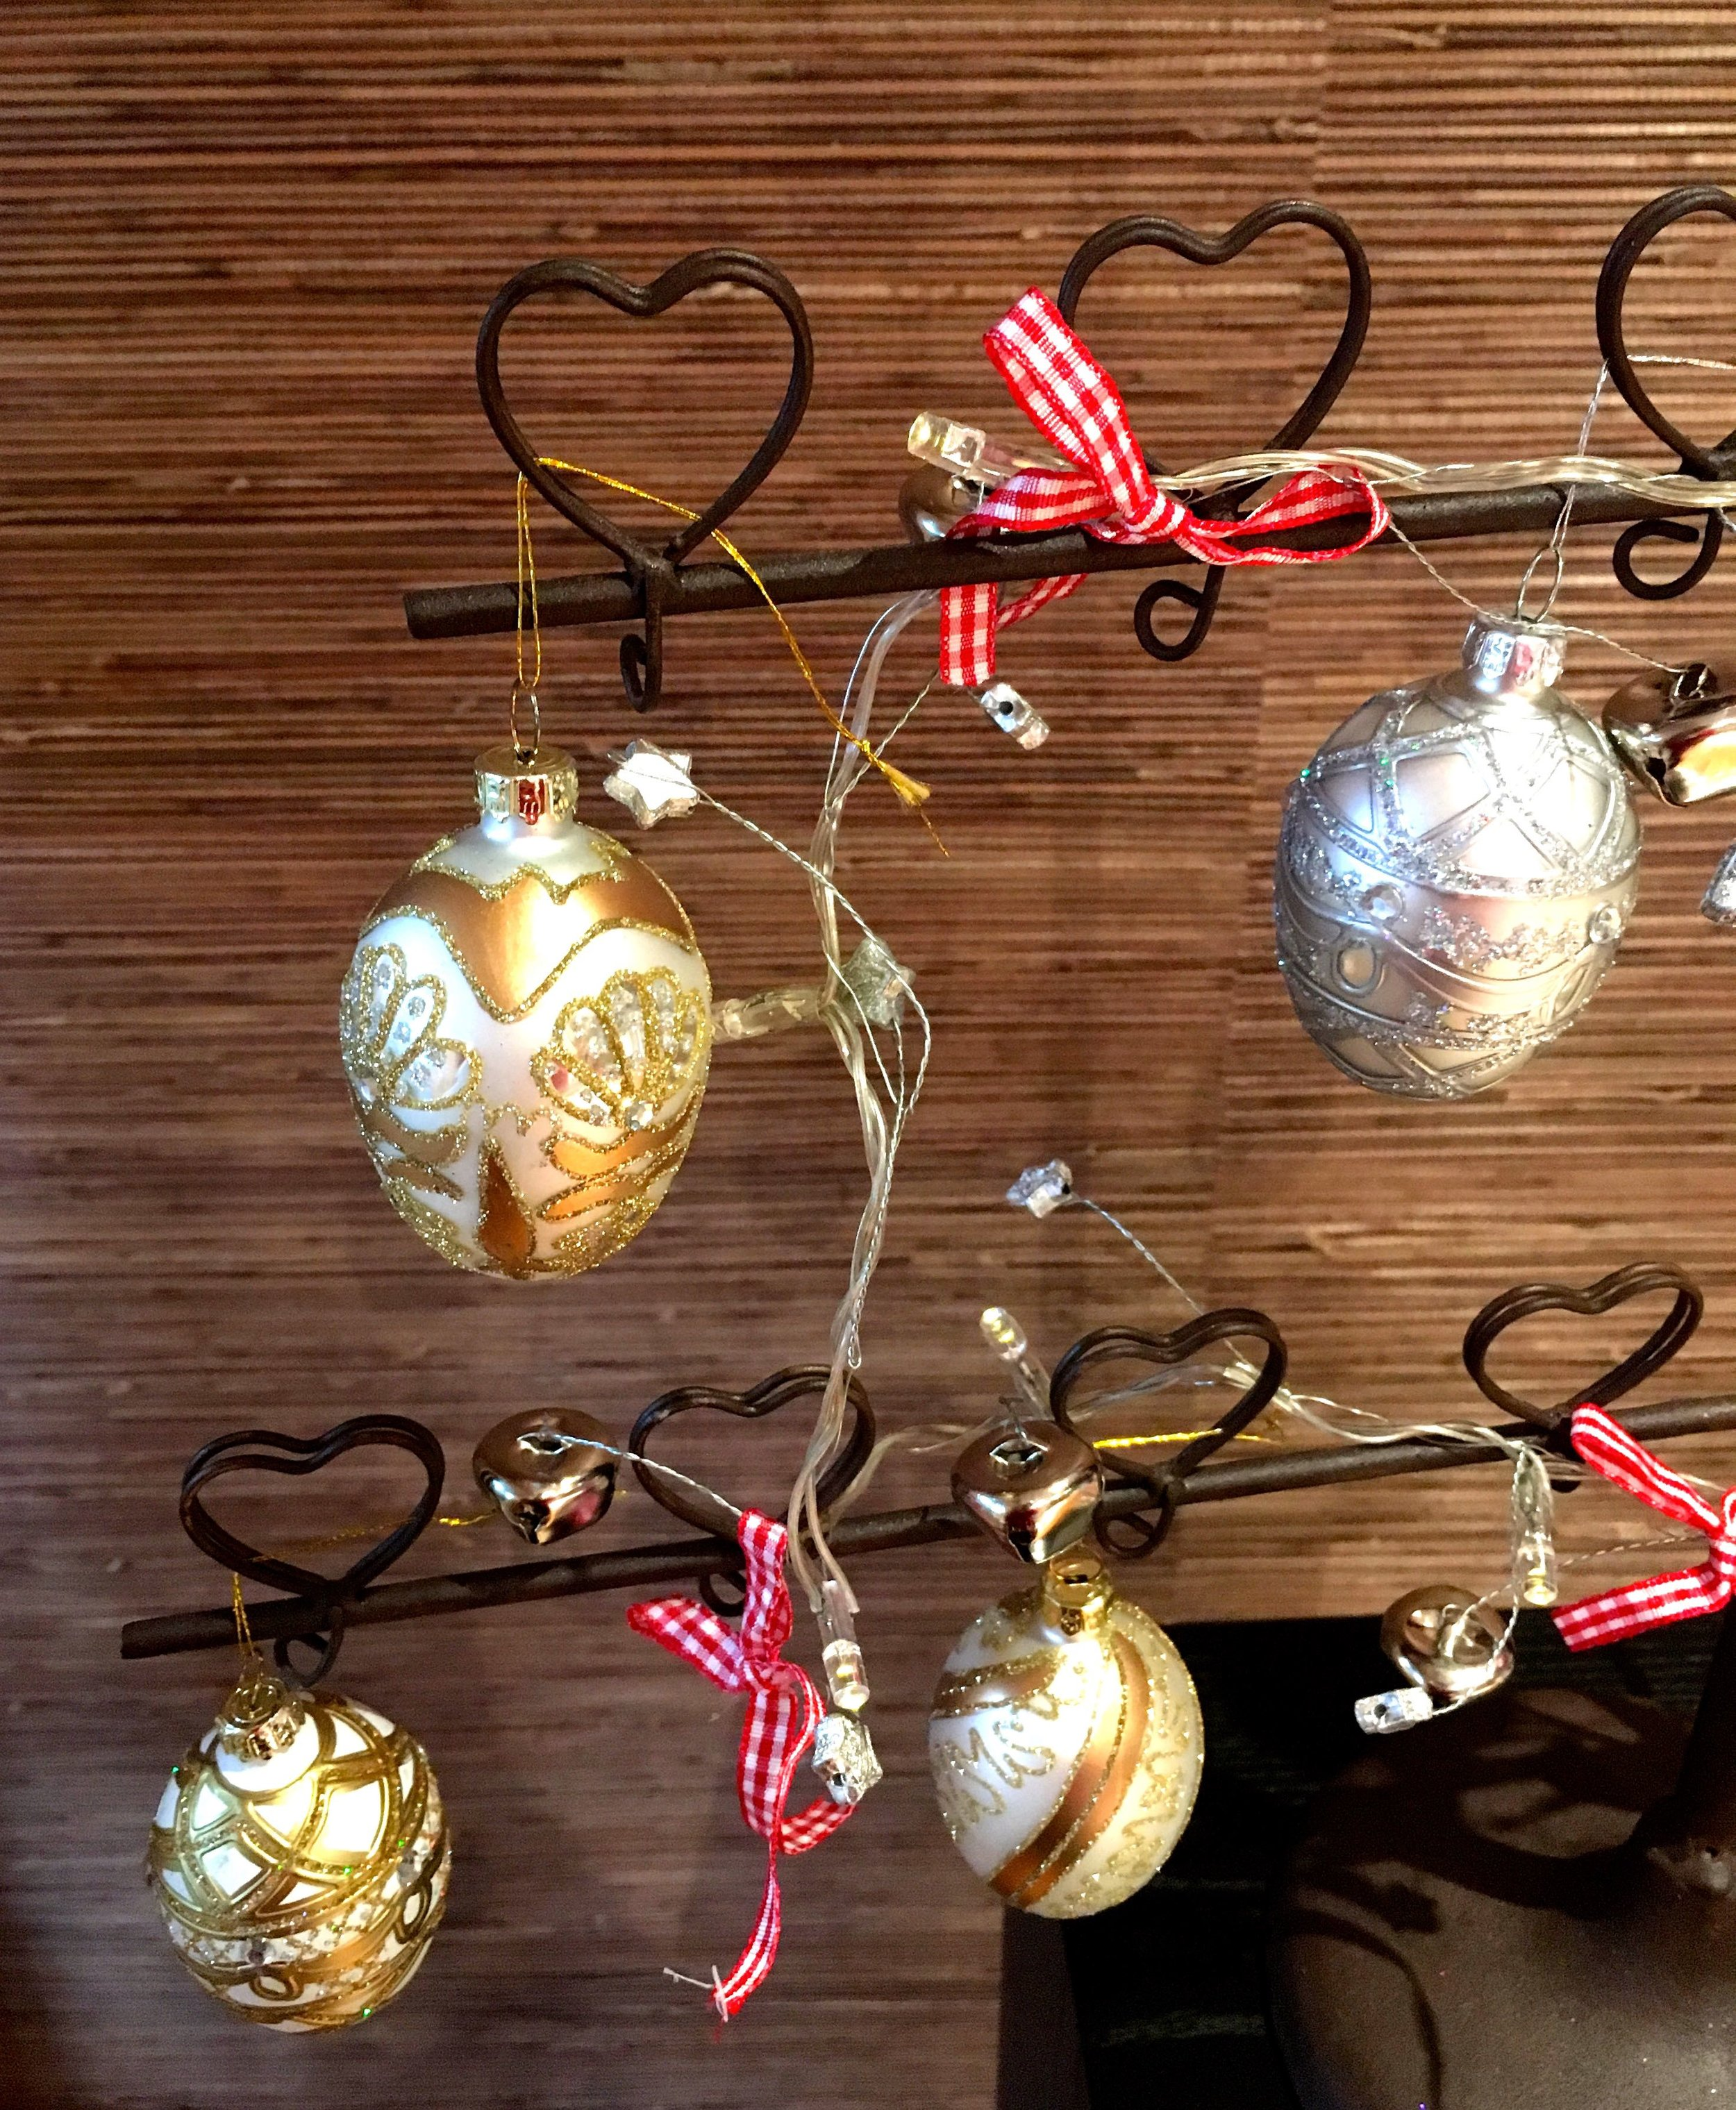 decorated baubles that have an egg-shaped appeal